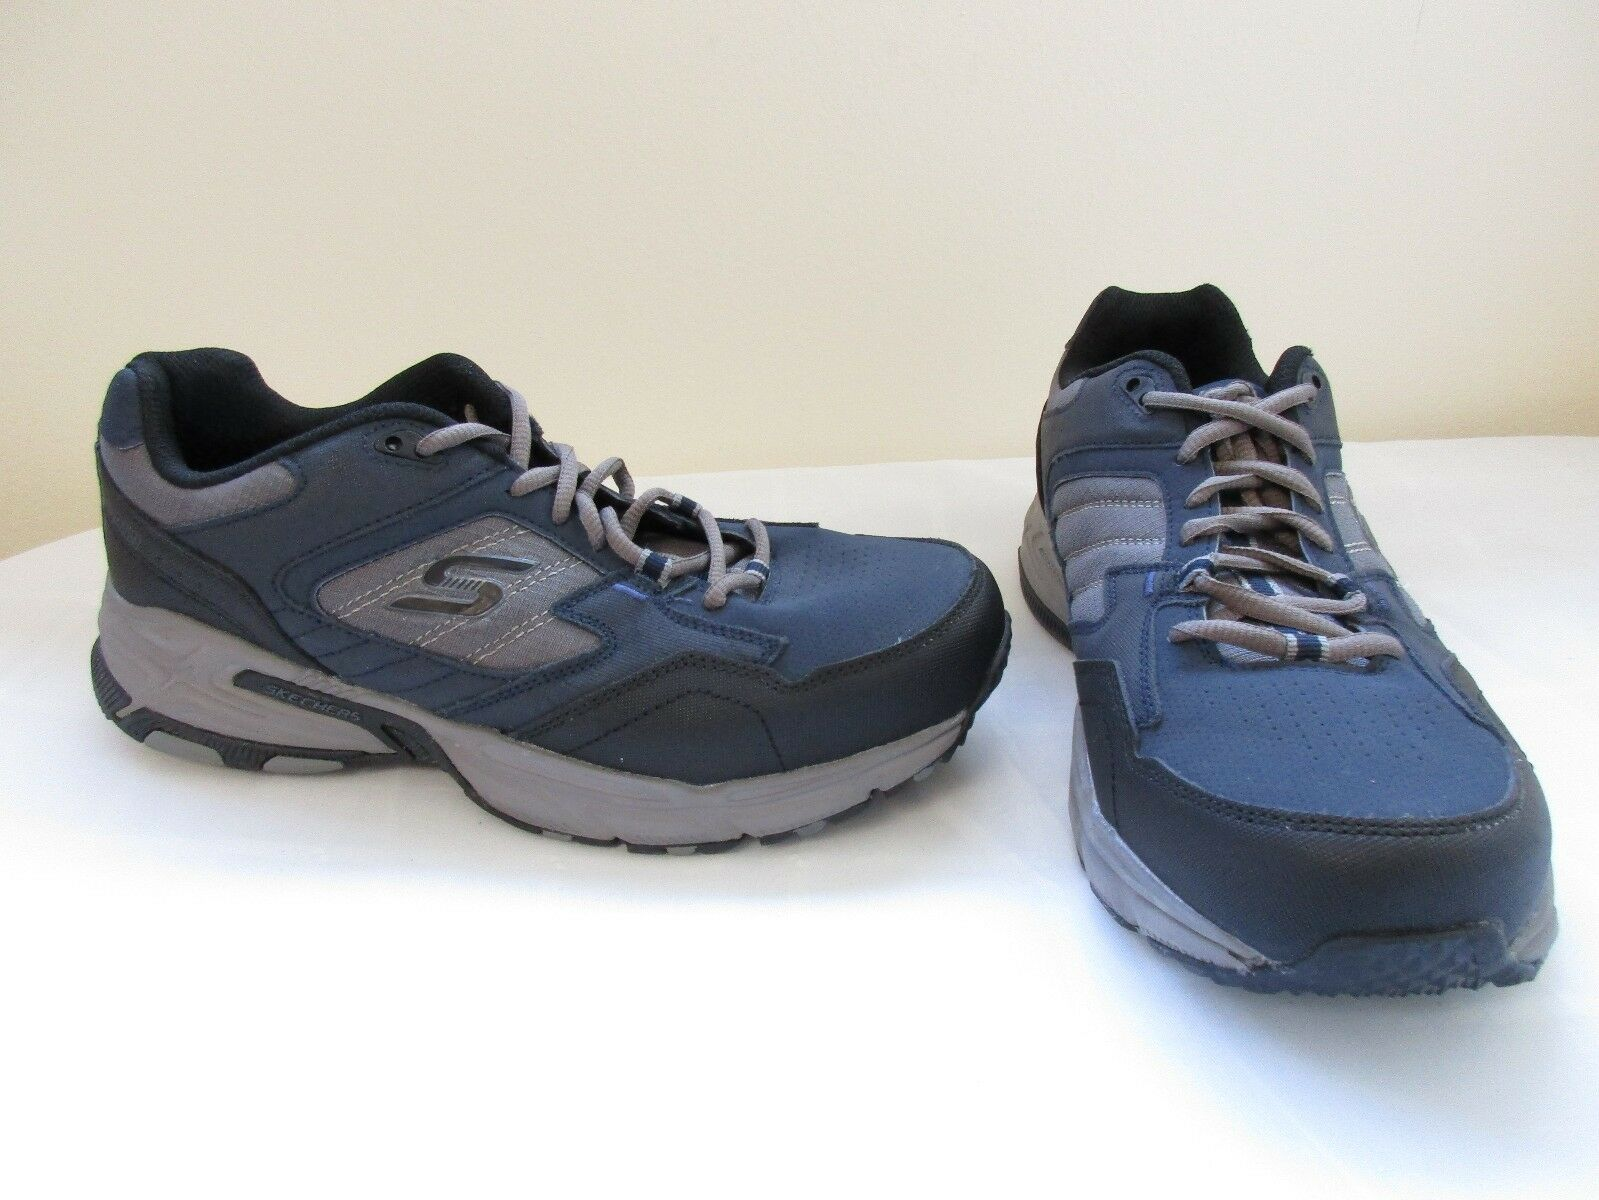 New! Men's Skechers Stamina Plus Training Athletic Shoes 50959EW Navy/Grey 9F Cheap and beautiful fashion